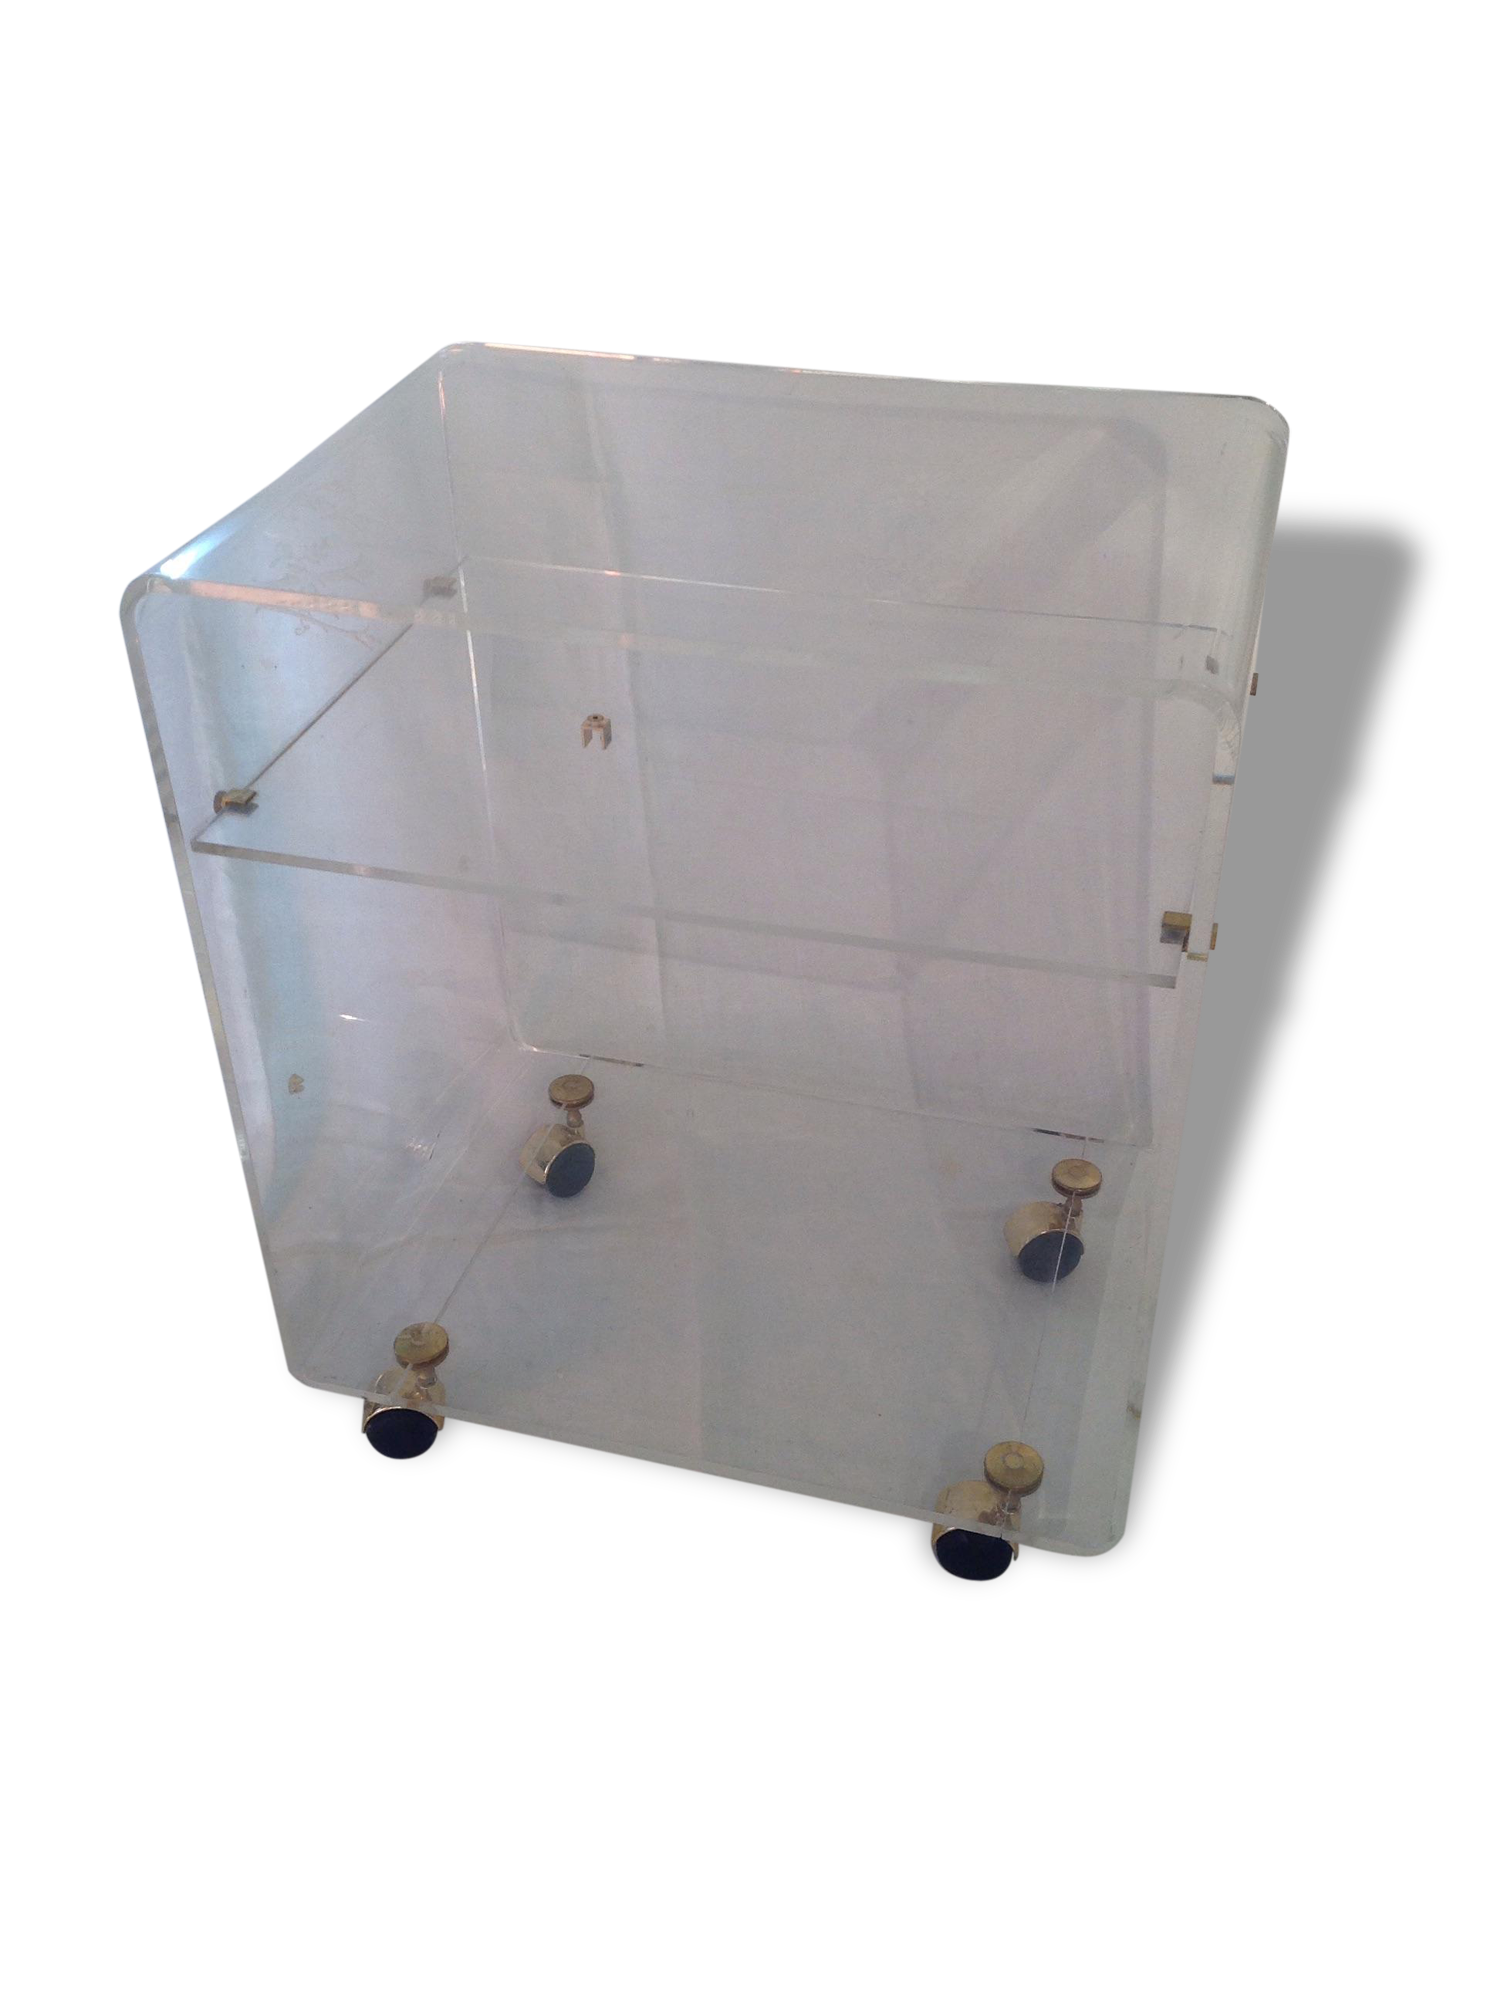 Perfect meuble tv david lange with meuble plexiglas transparent - Tabouret de bar plexiglas transparent ...